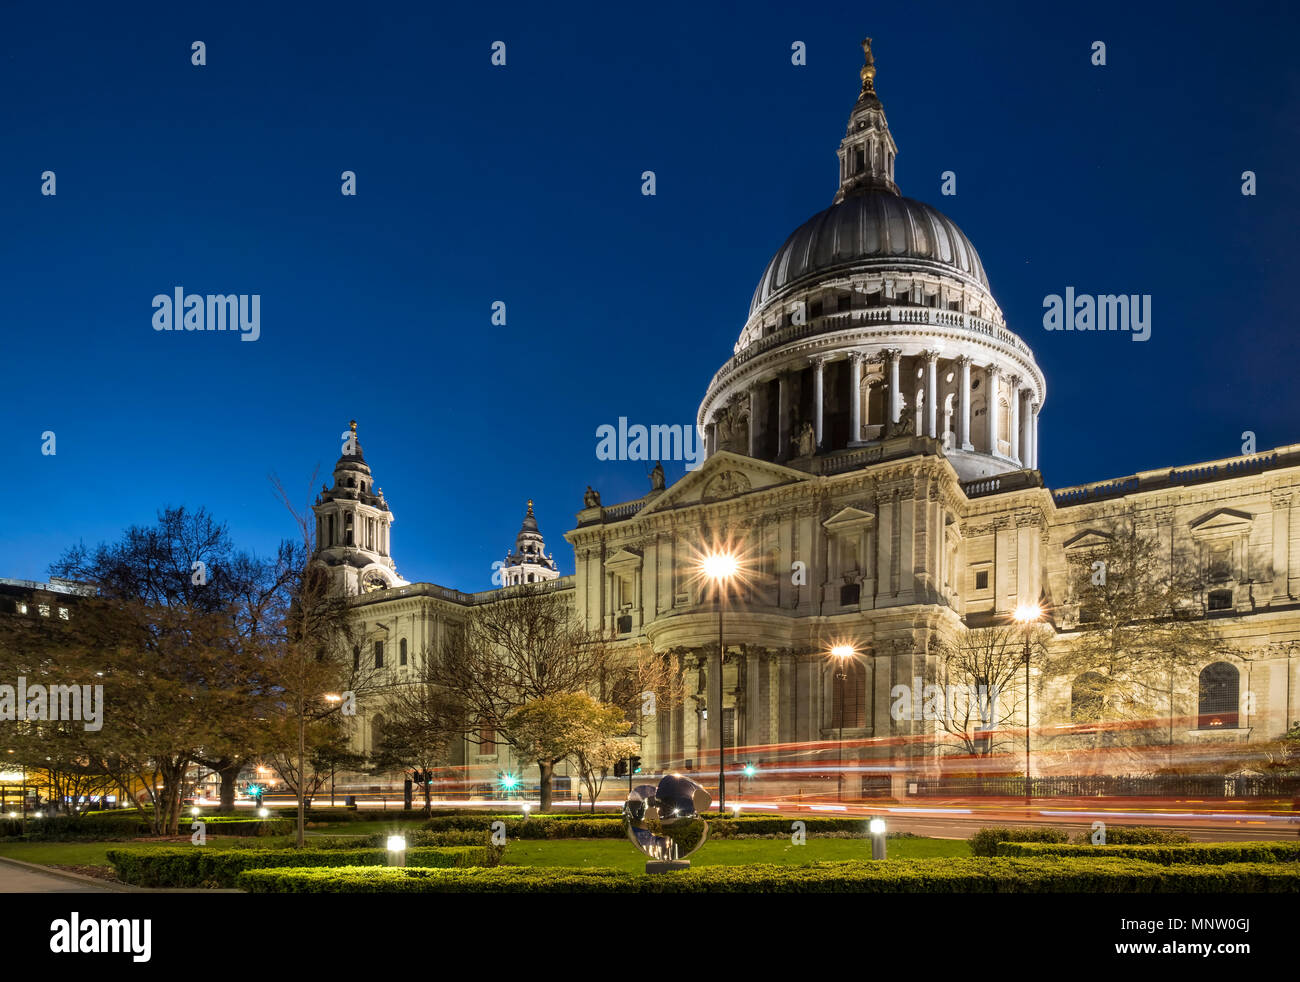 Cathédrale St Paul la nuit, Londres, Angleterre, Royaume-Uni Photo Stock